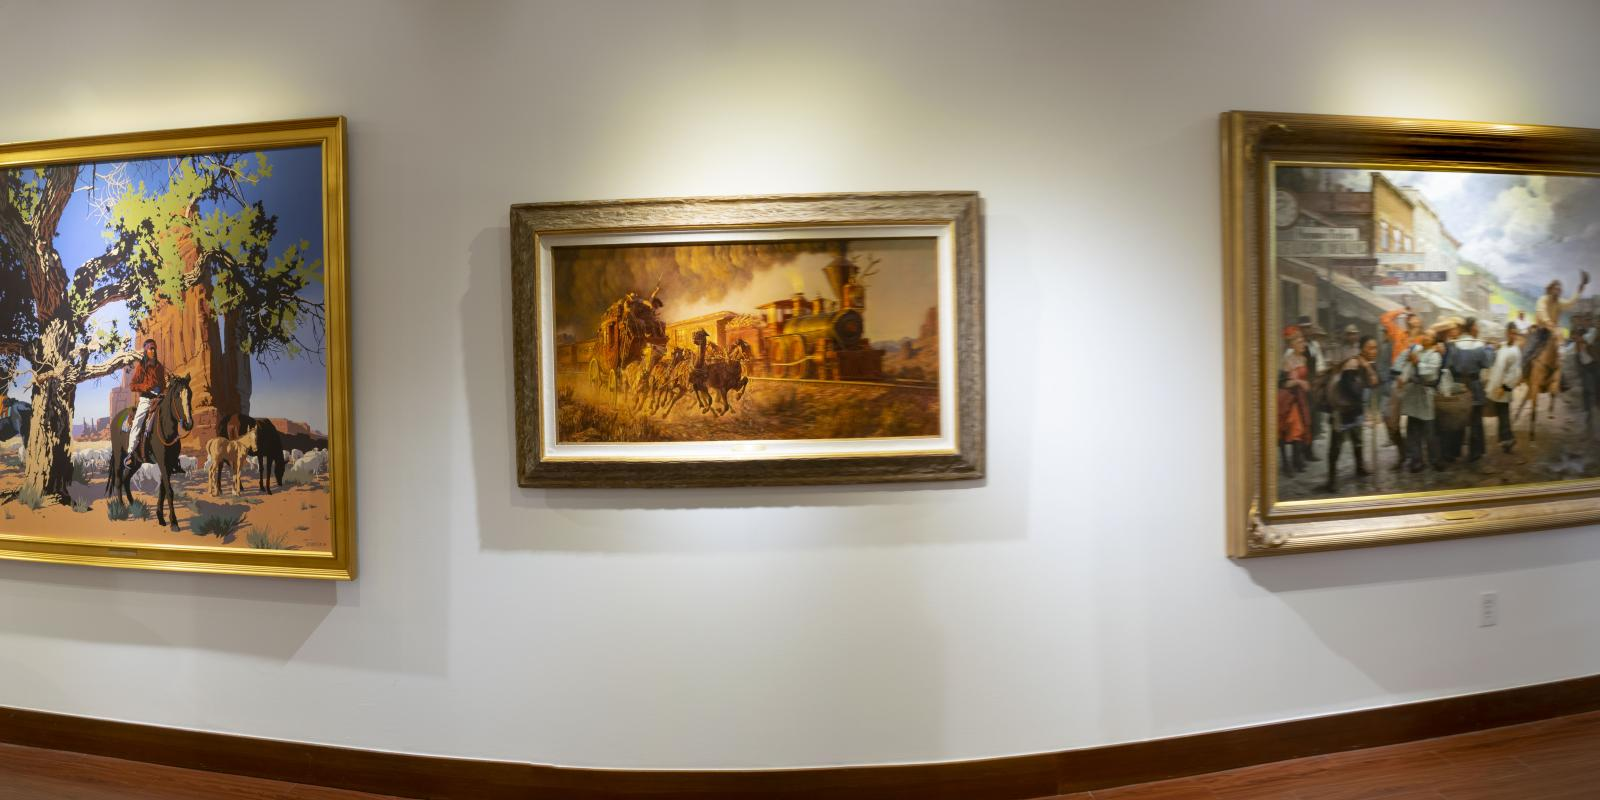 """Installation View, Front of gallery, """"Art of the West: New Acquisitions"""" Exhibition, Jun 24, 2019 to Sep26, 2019, Curator: Michele Cairella Fillmore, Don B. Huntley Gallery, Cal Poly Pomona."""